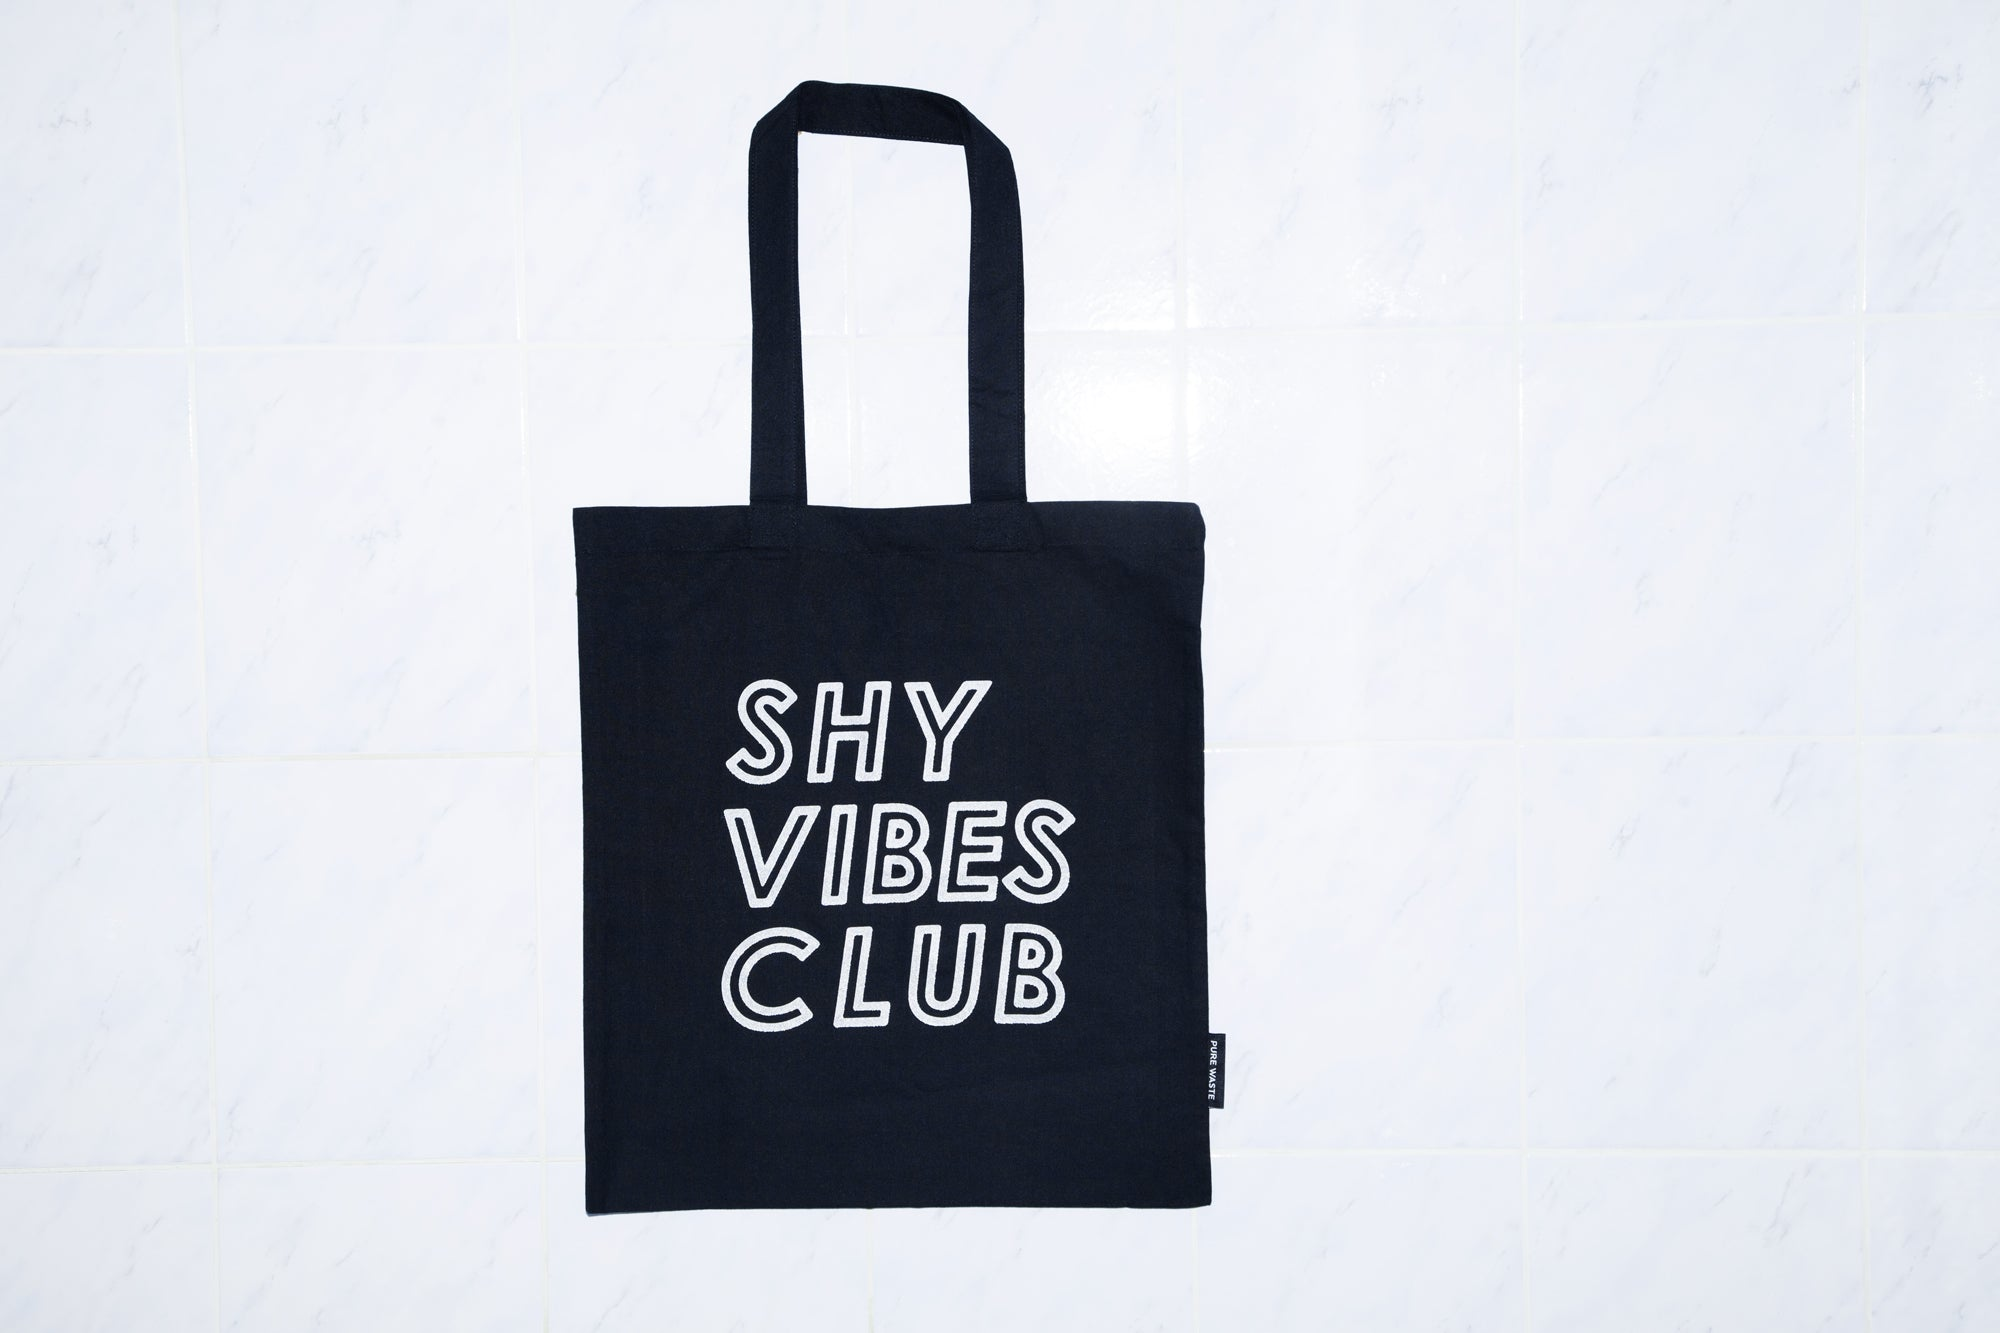 Shy Vibes Club recycled tote bag reflective